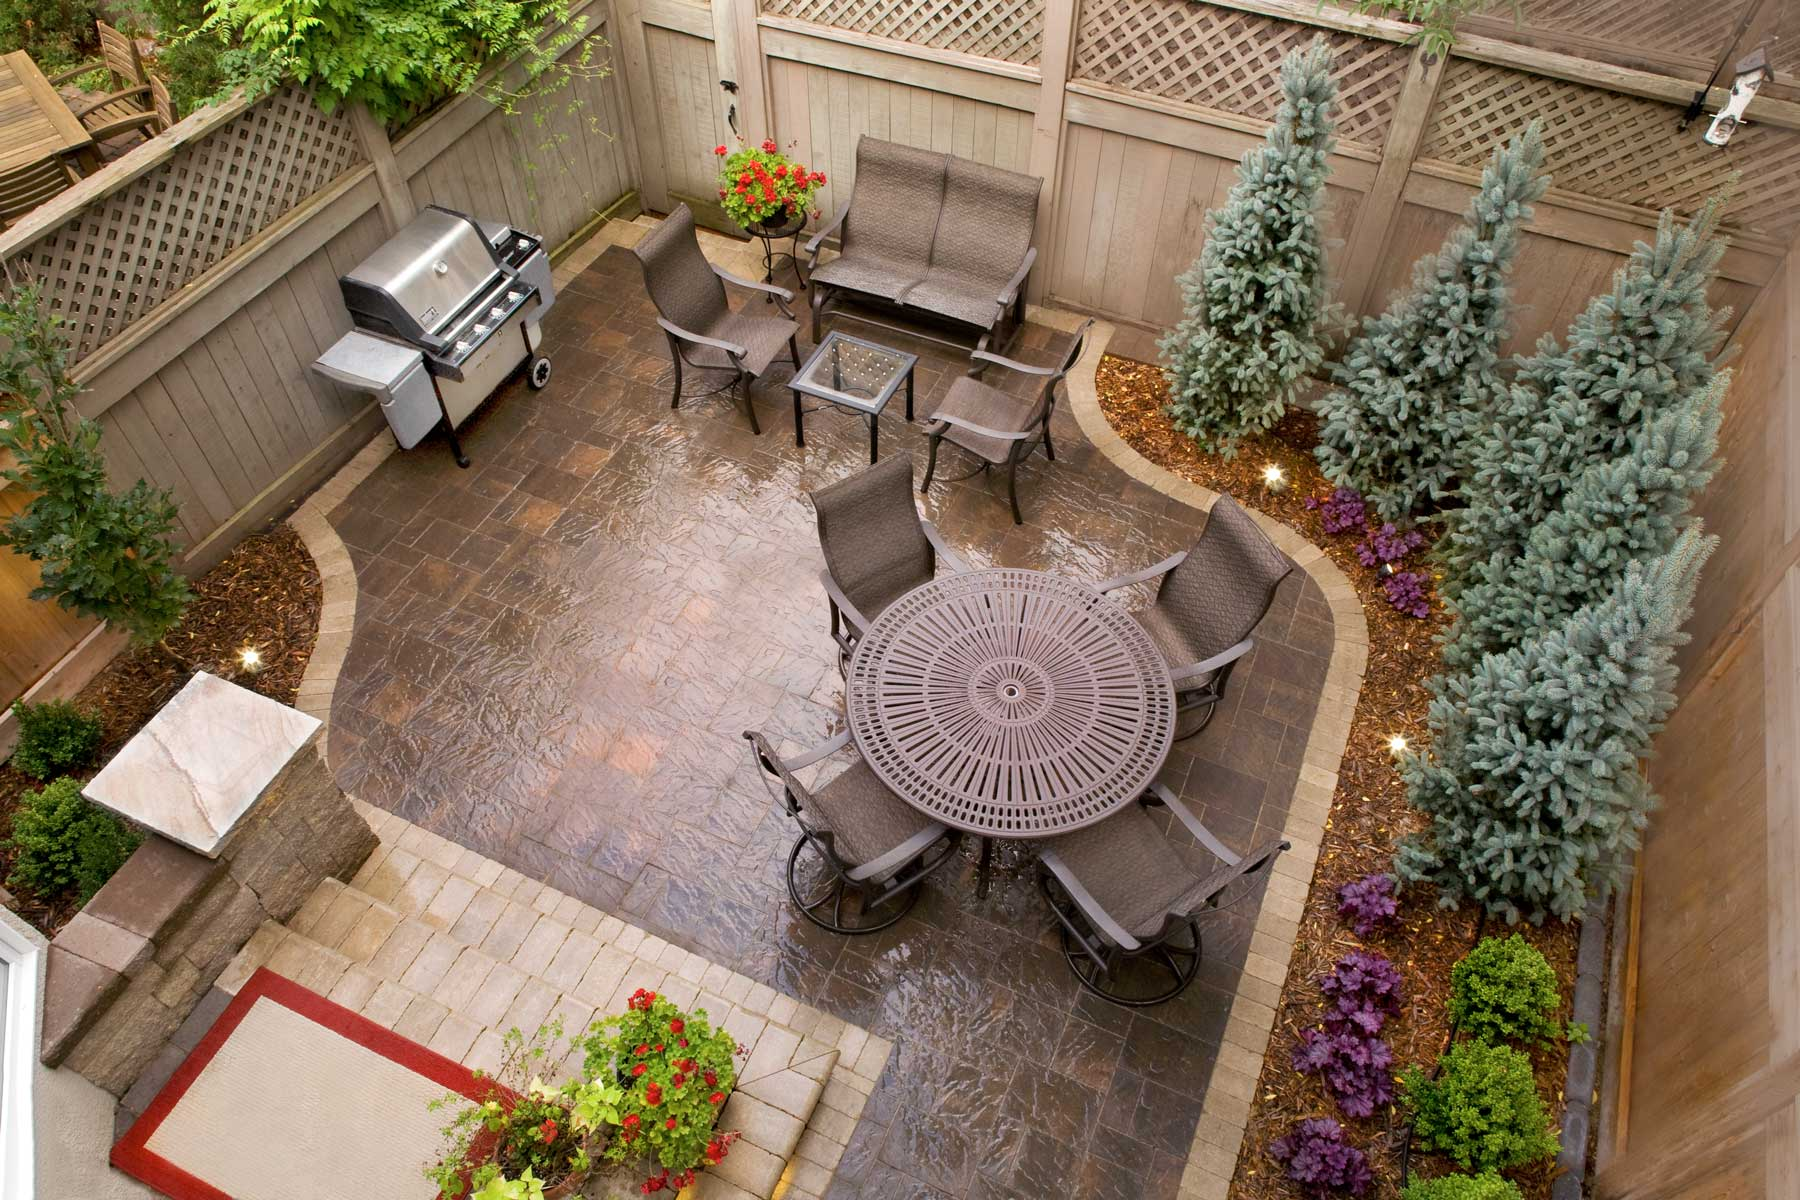 This Slatestone patio, in the Mocha color with a contrasting border, fits perfectly into the compact space, with room for plantings.